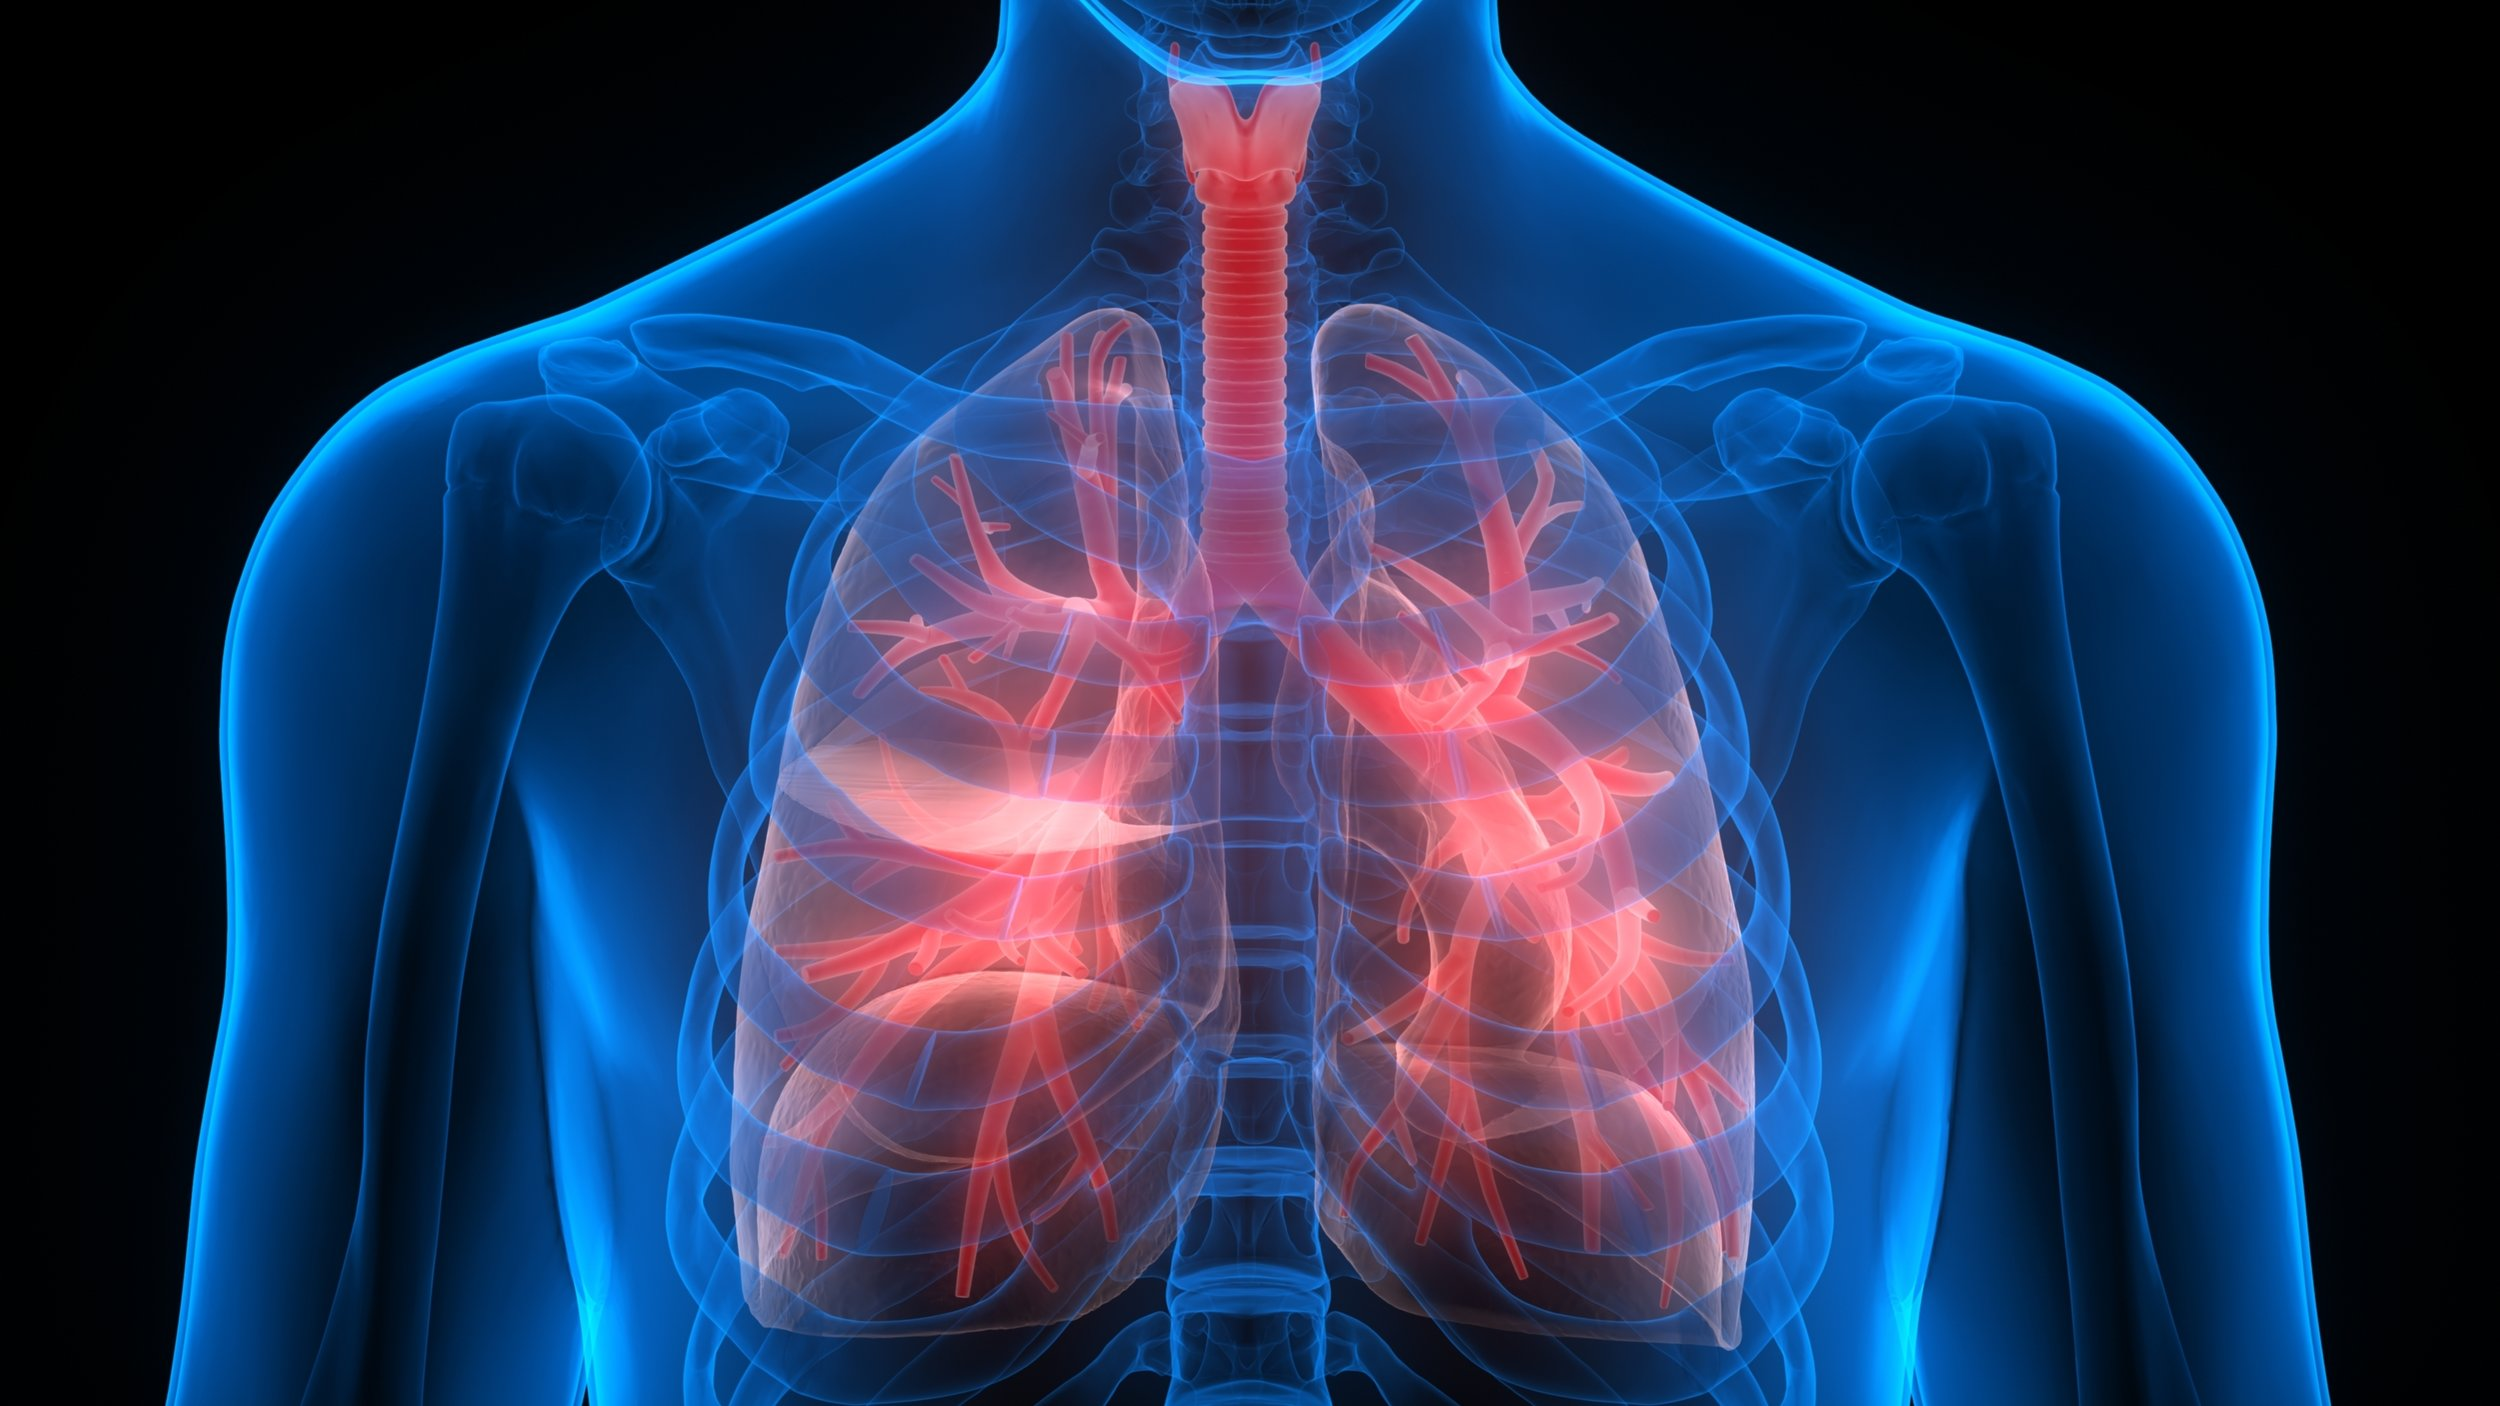 Newly developed nanoparticles help fight lung cancer in animal model